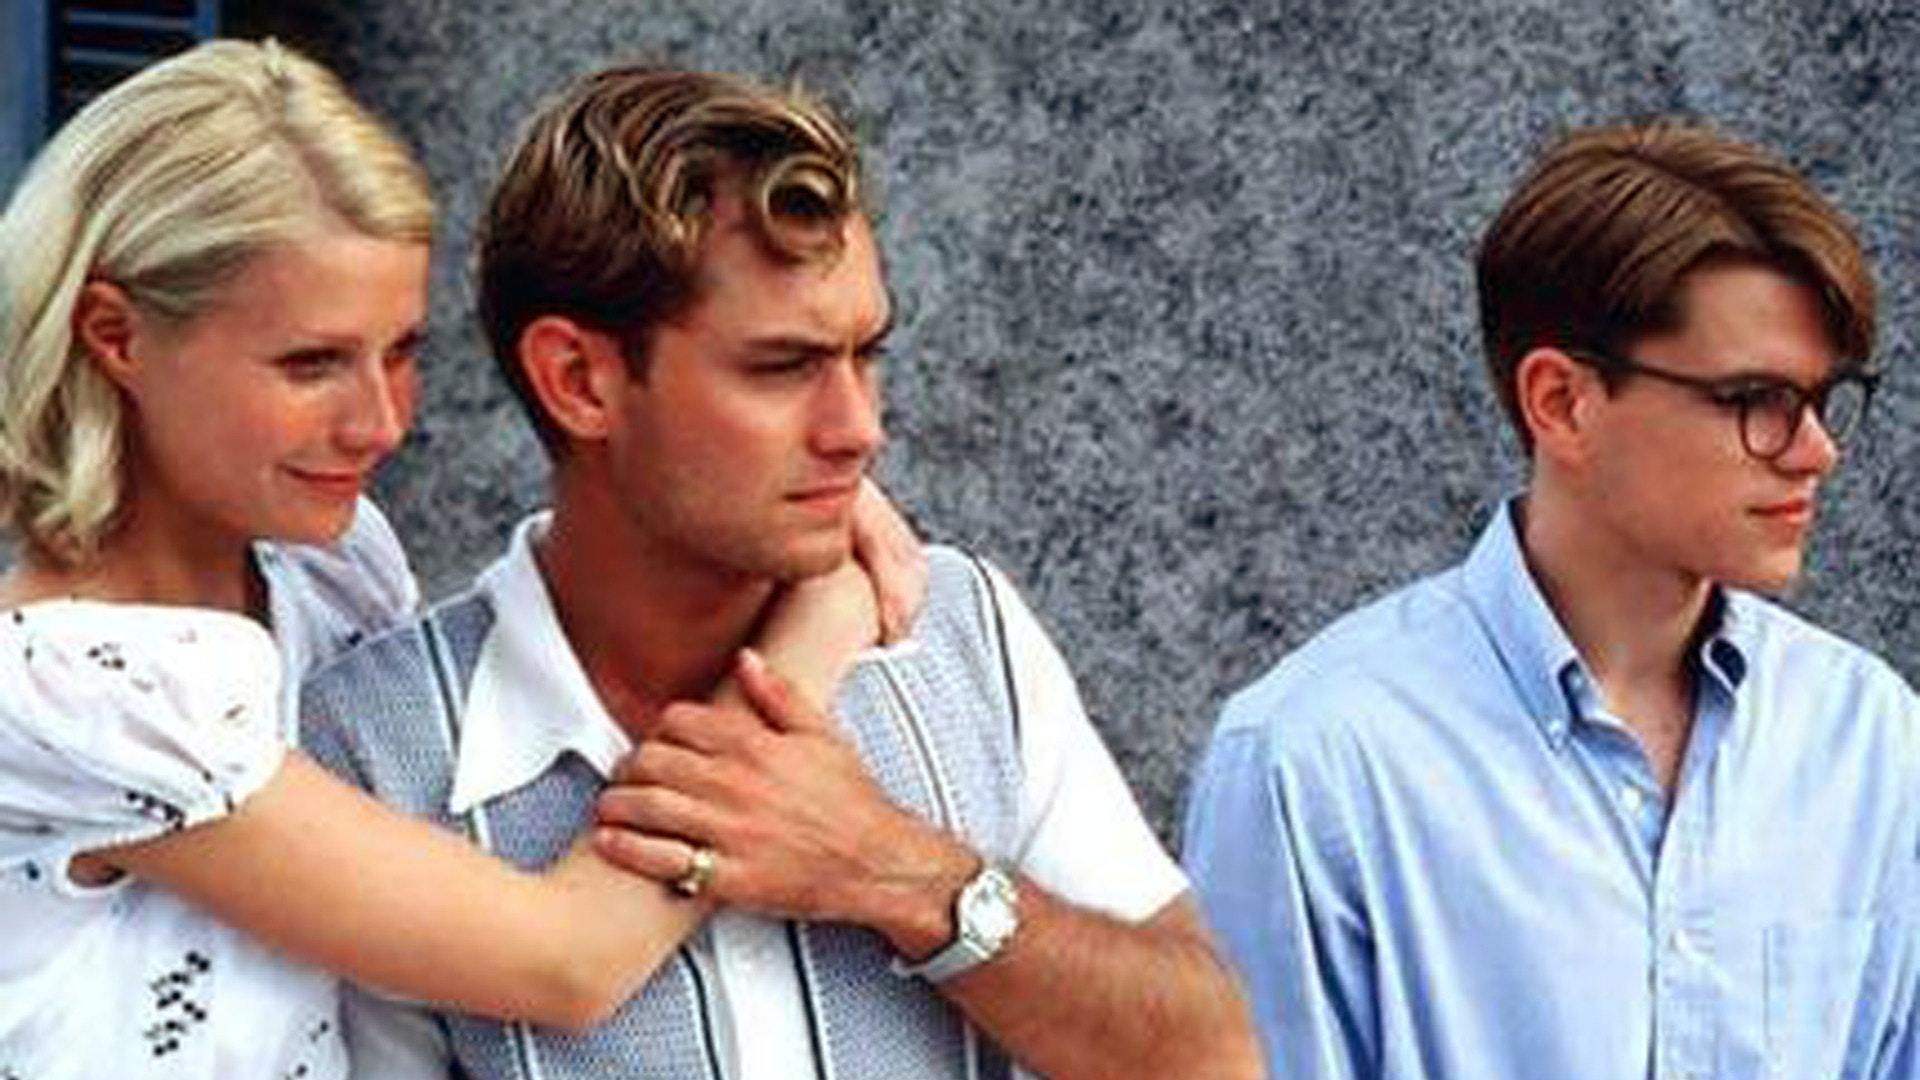 talented mr ripley essay But what i love about patricia highsmith's the talented mr ripley is how artfully the formula is subverted a brief is ripley in researching this essay, i've seen lots of attempts to diagnose this character, and have even fallen into the trap of reviewing him as a character rather than the book as a narrative.